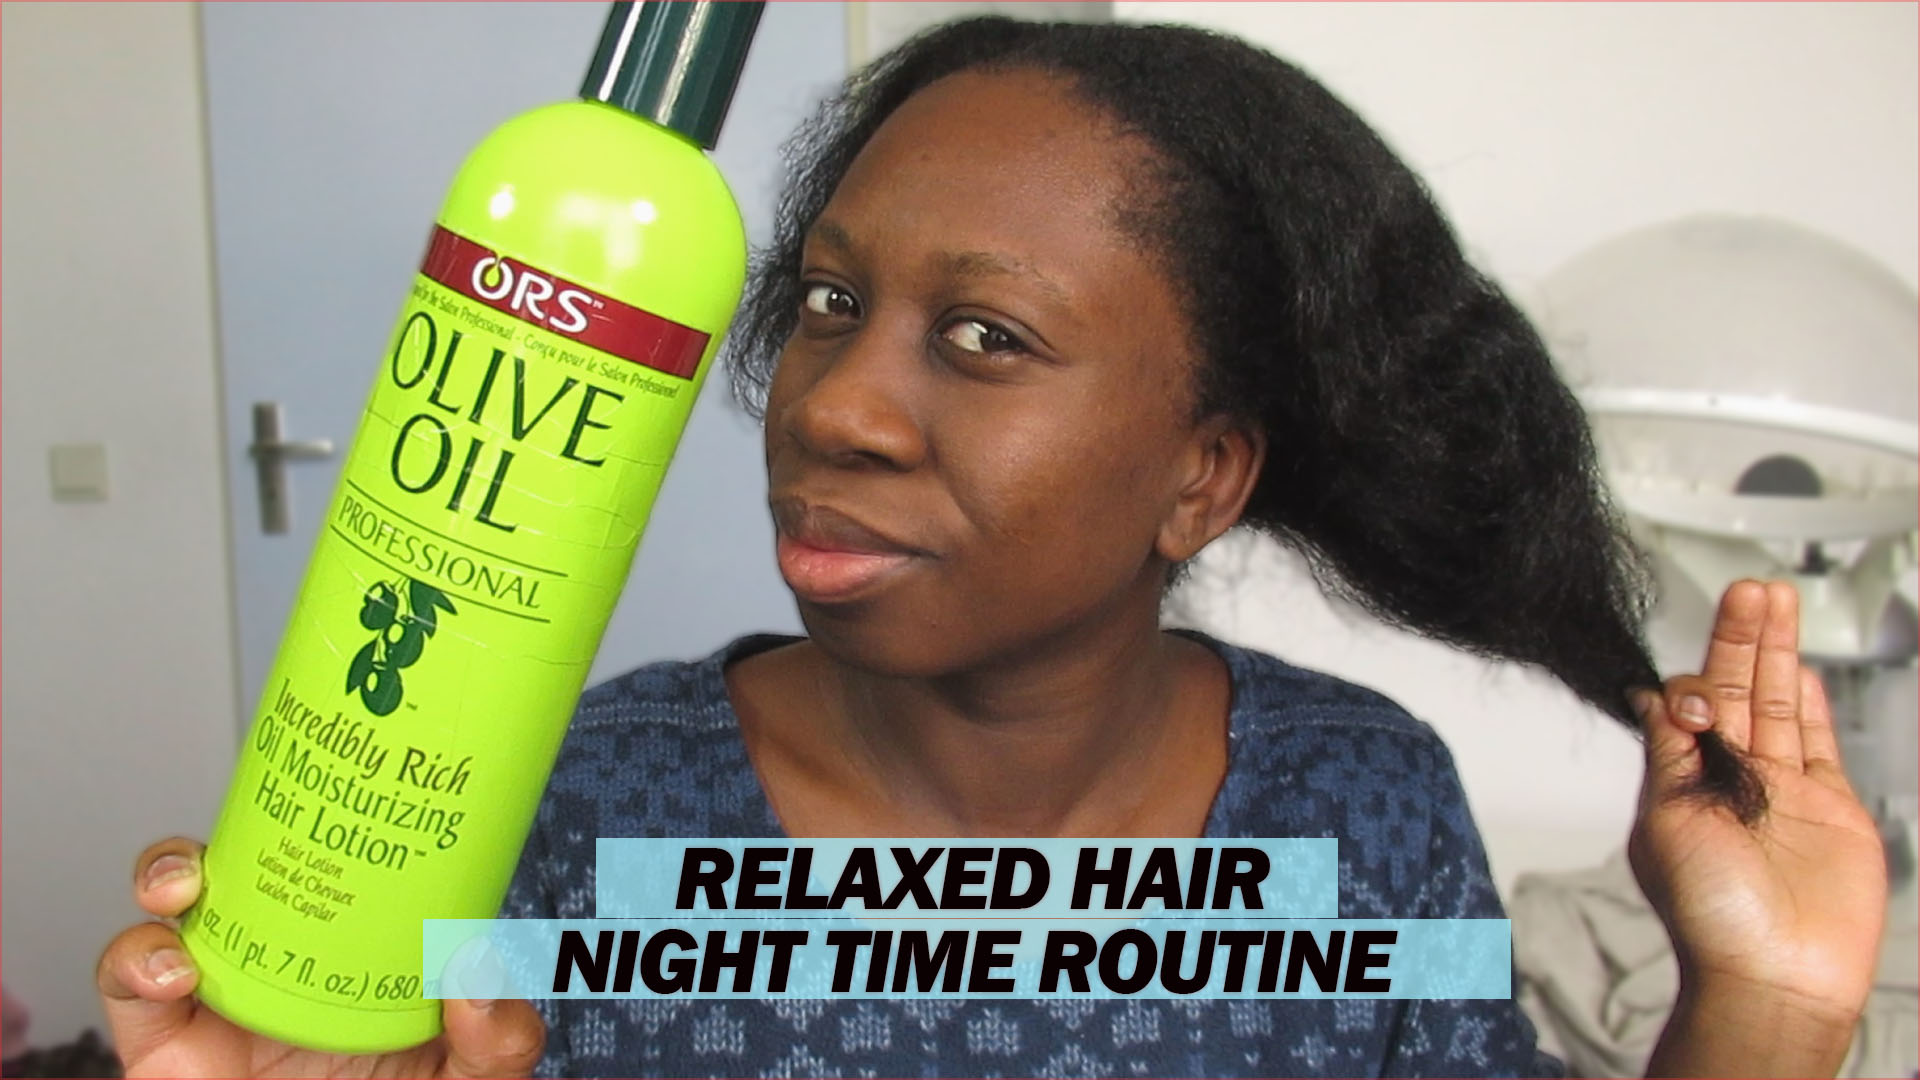 How Does Your Night Time Relaxed Hair Care Routine Look Like Eemsdiary